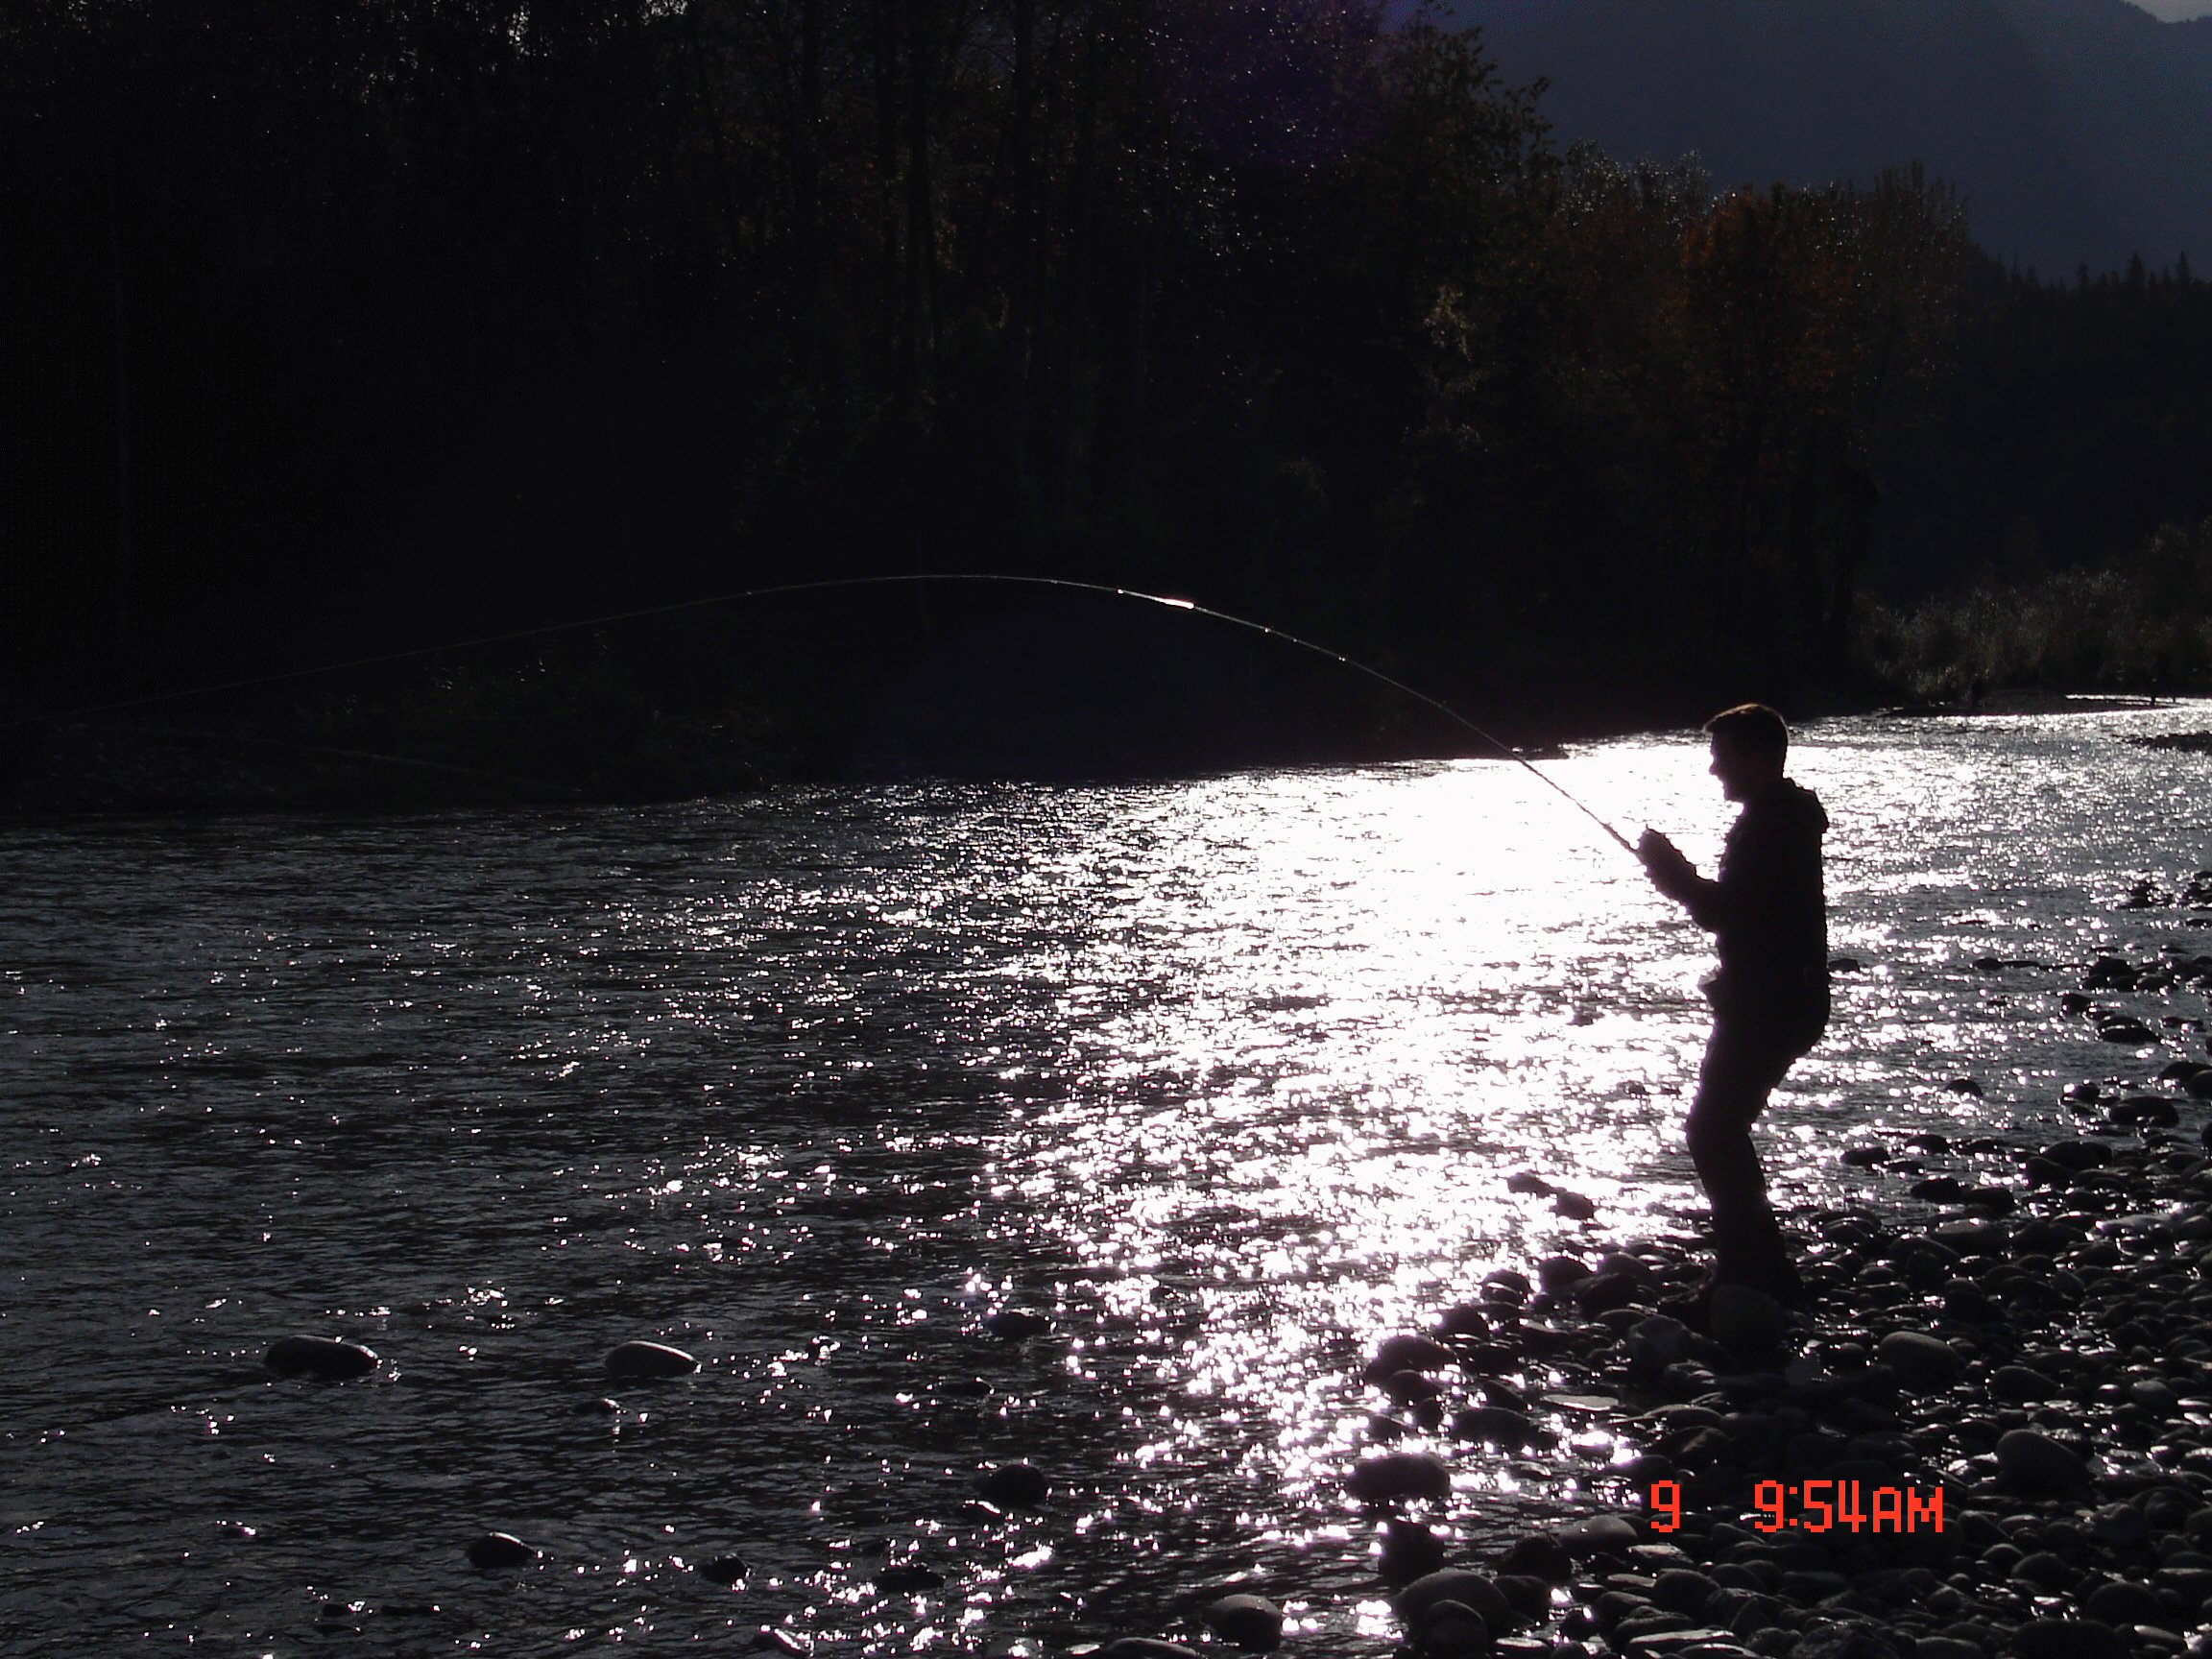 Chum Salmon fishing on the Vedder river in Chilliwack British Columbia